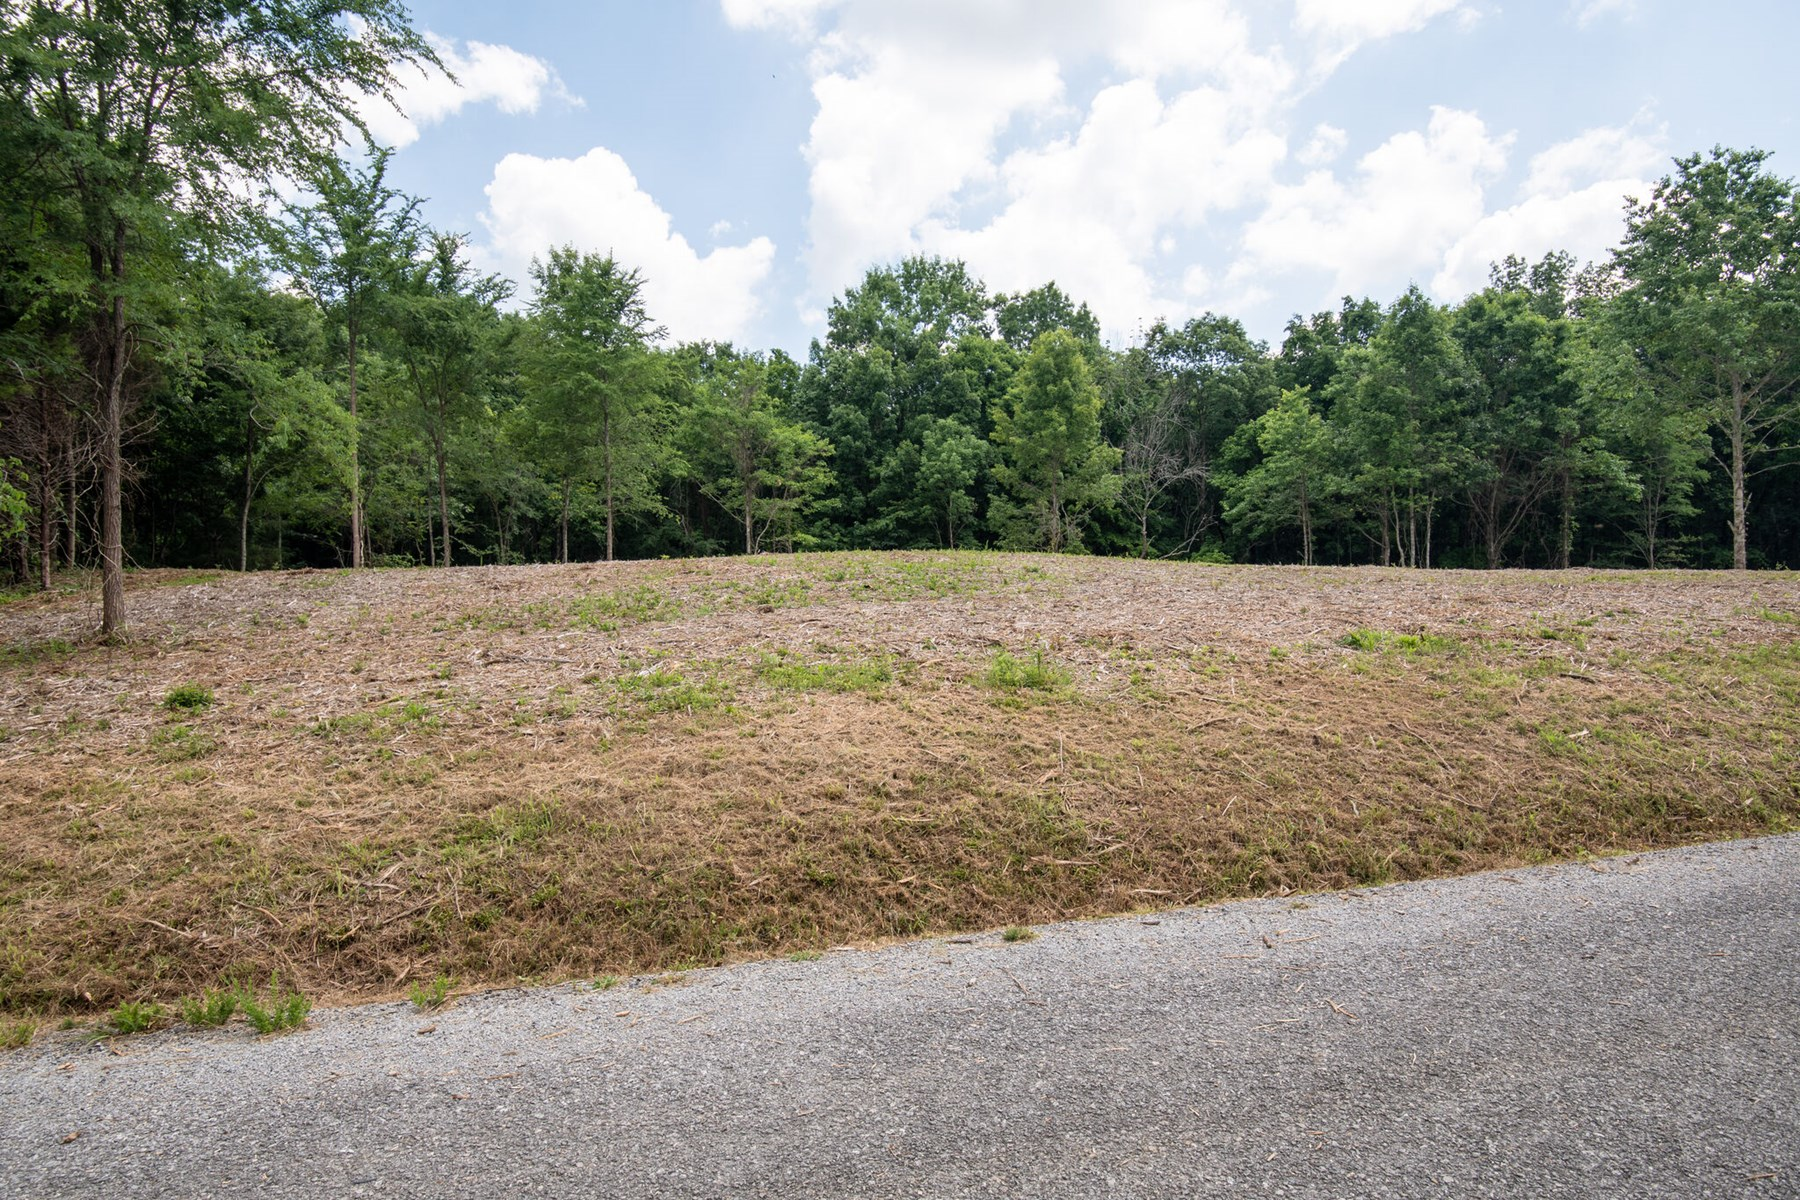 Recreational Property for Sale in Culleoka, Tennessee.